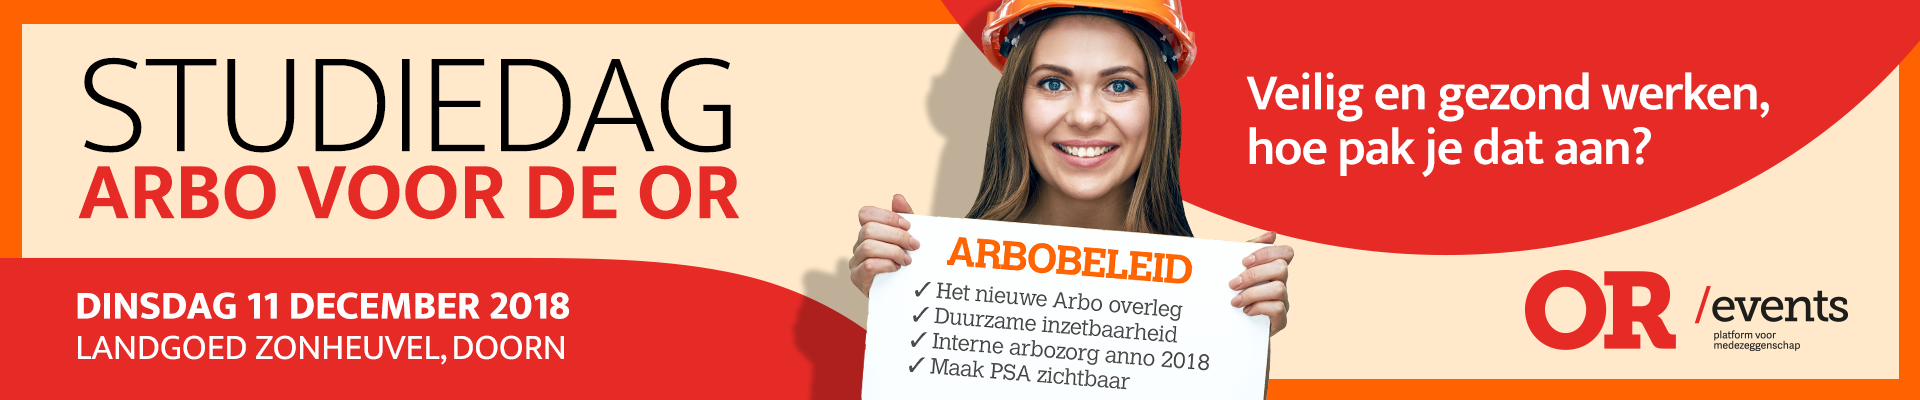 Studiedag Arbo voor de OR 11 december 2018